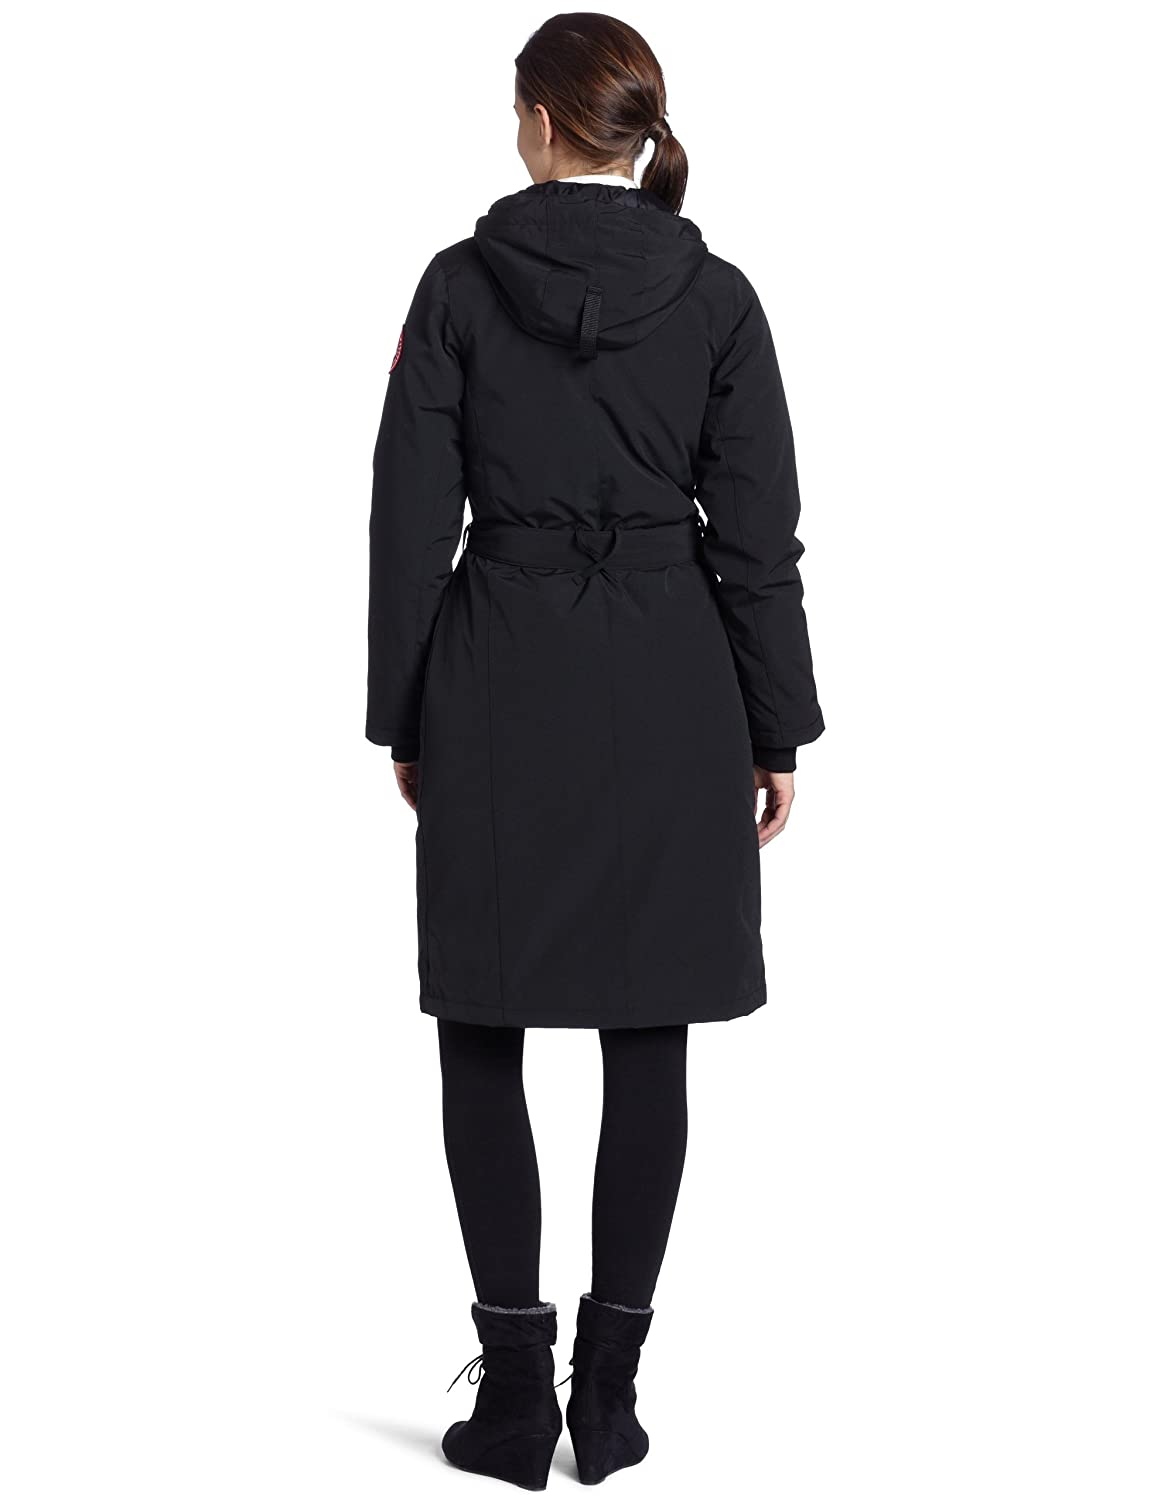 e204a6970 Amazon.com  Canada Goose Women s Whistler Parka  Clothing